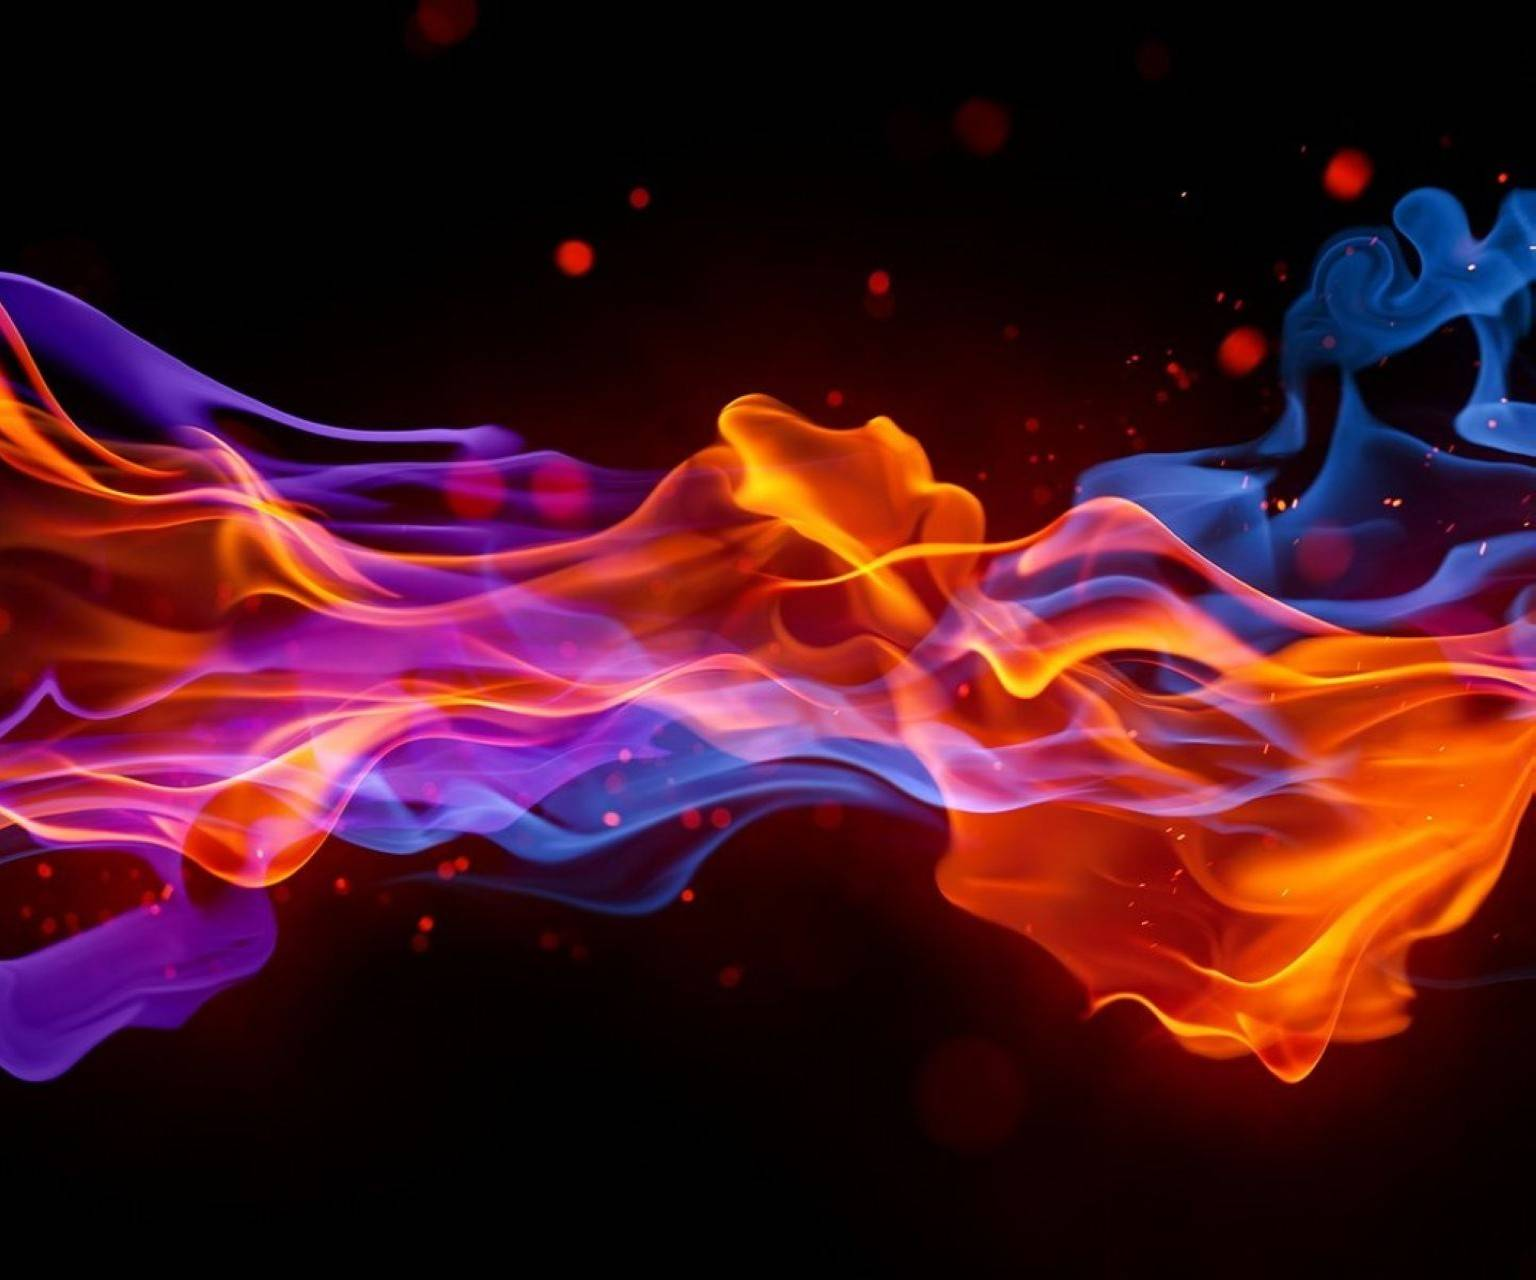 Burning Colors